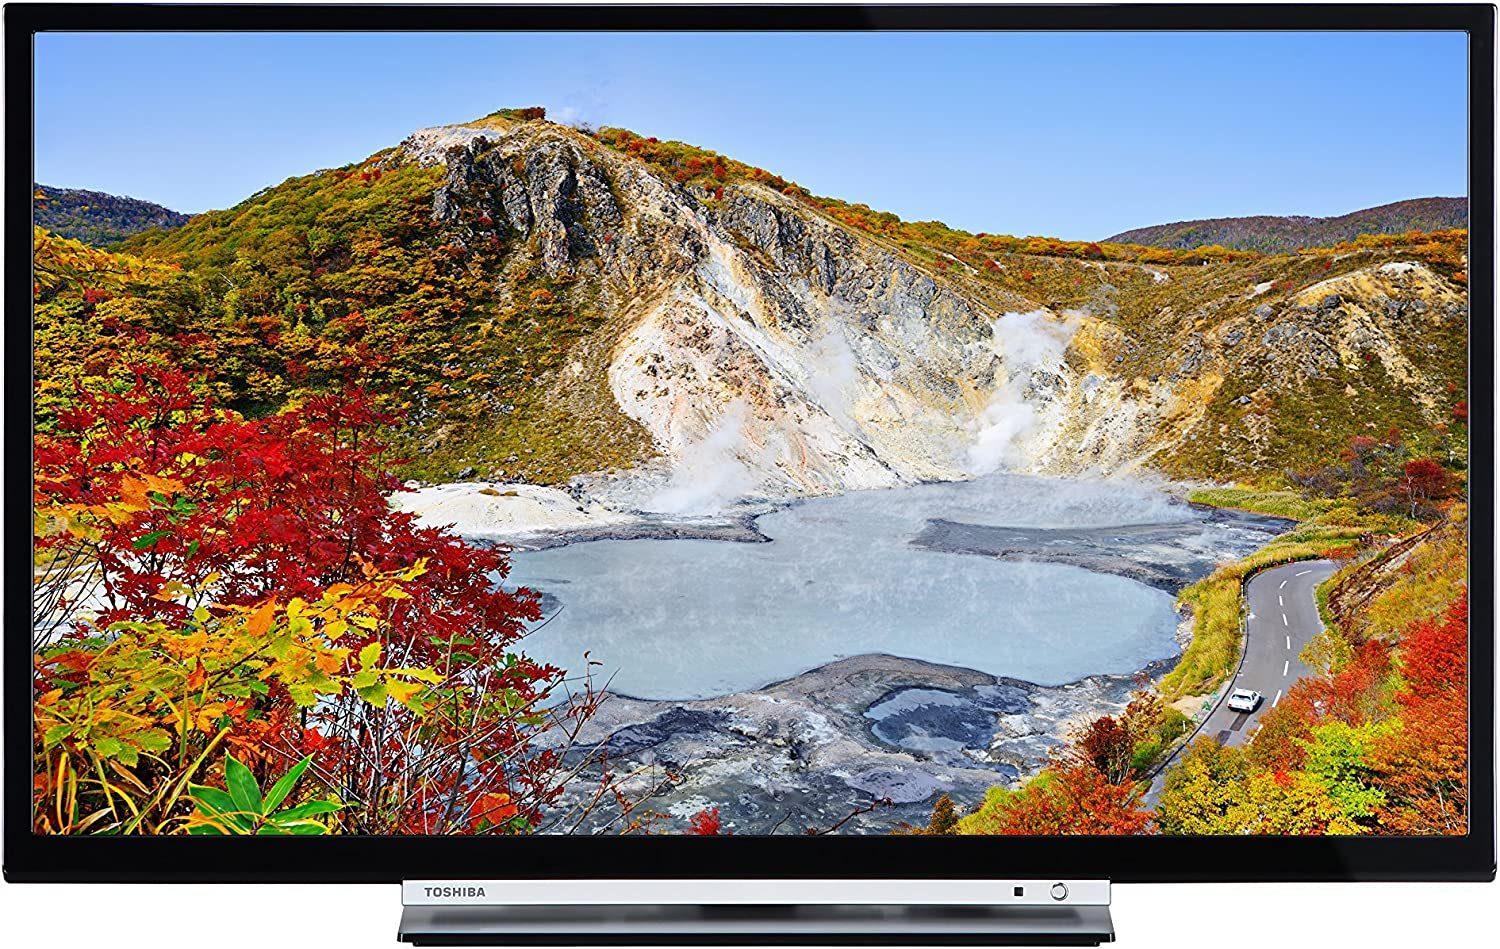 Toshiba 24W3753DB 24-Inch HD Ready WLAN Smart TV with Freeview Play - Black (2017 Model) (Certified Refurbished): Amazon.es: Electrónica